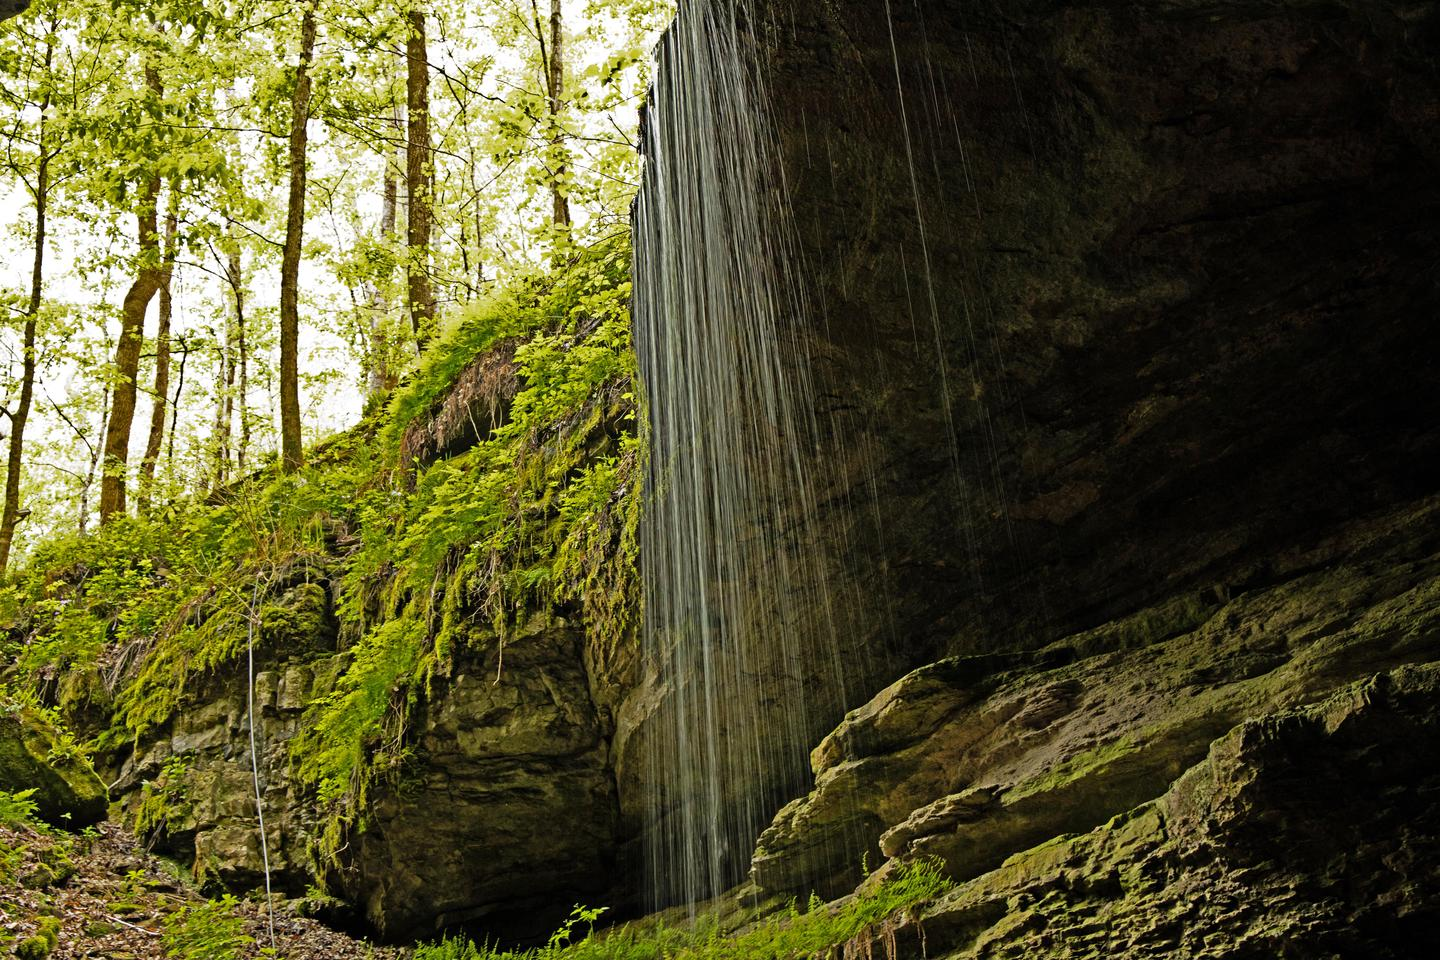 Preview photo of Mammoth Cave National Park